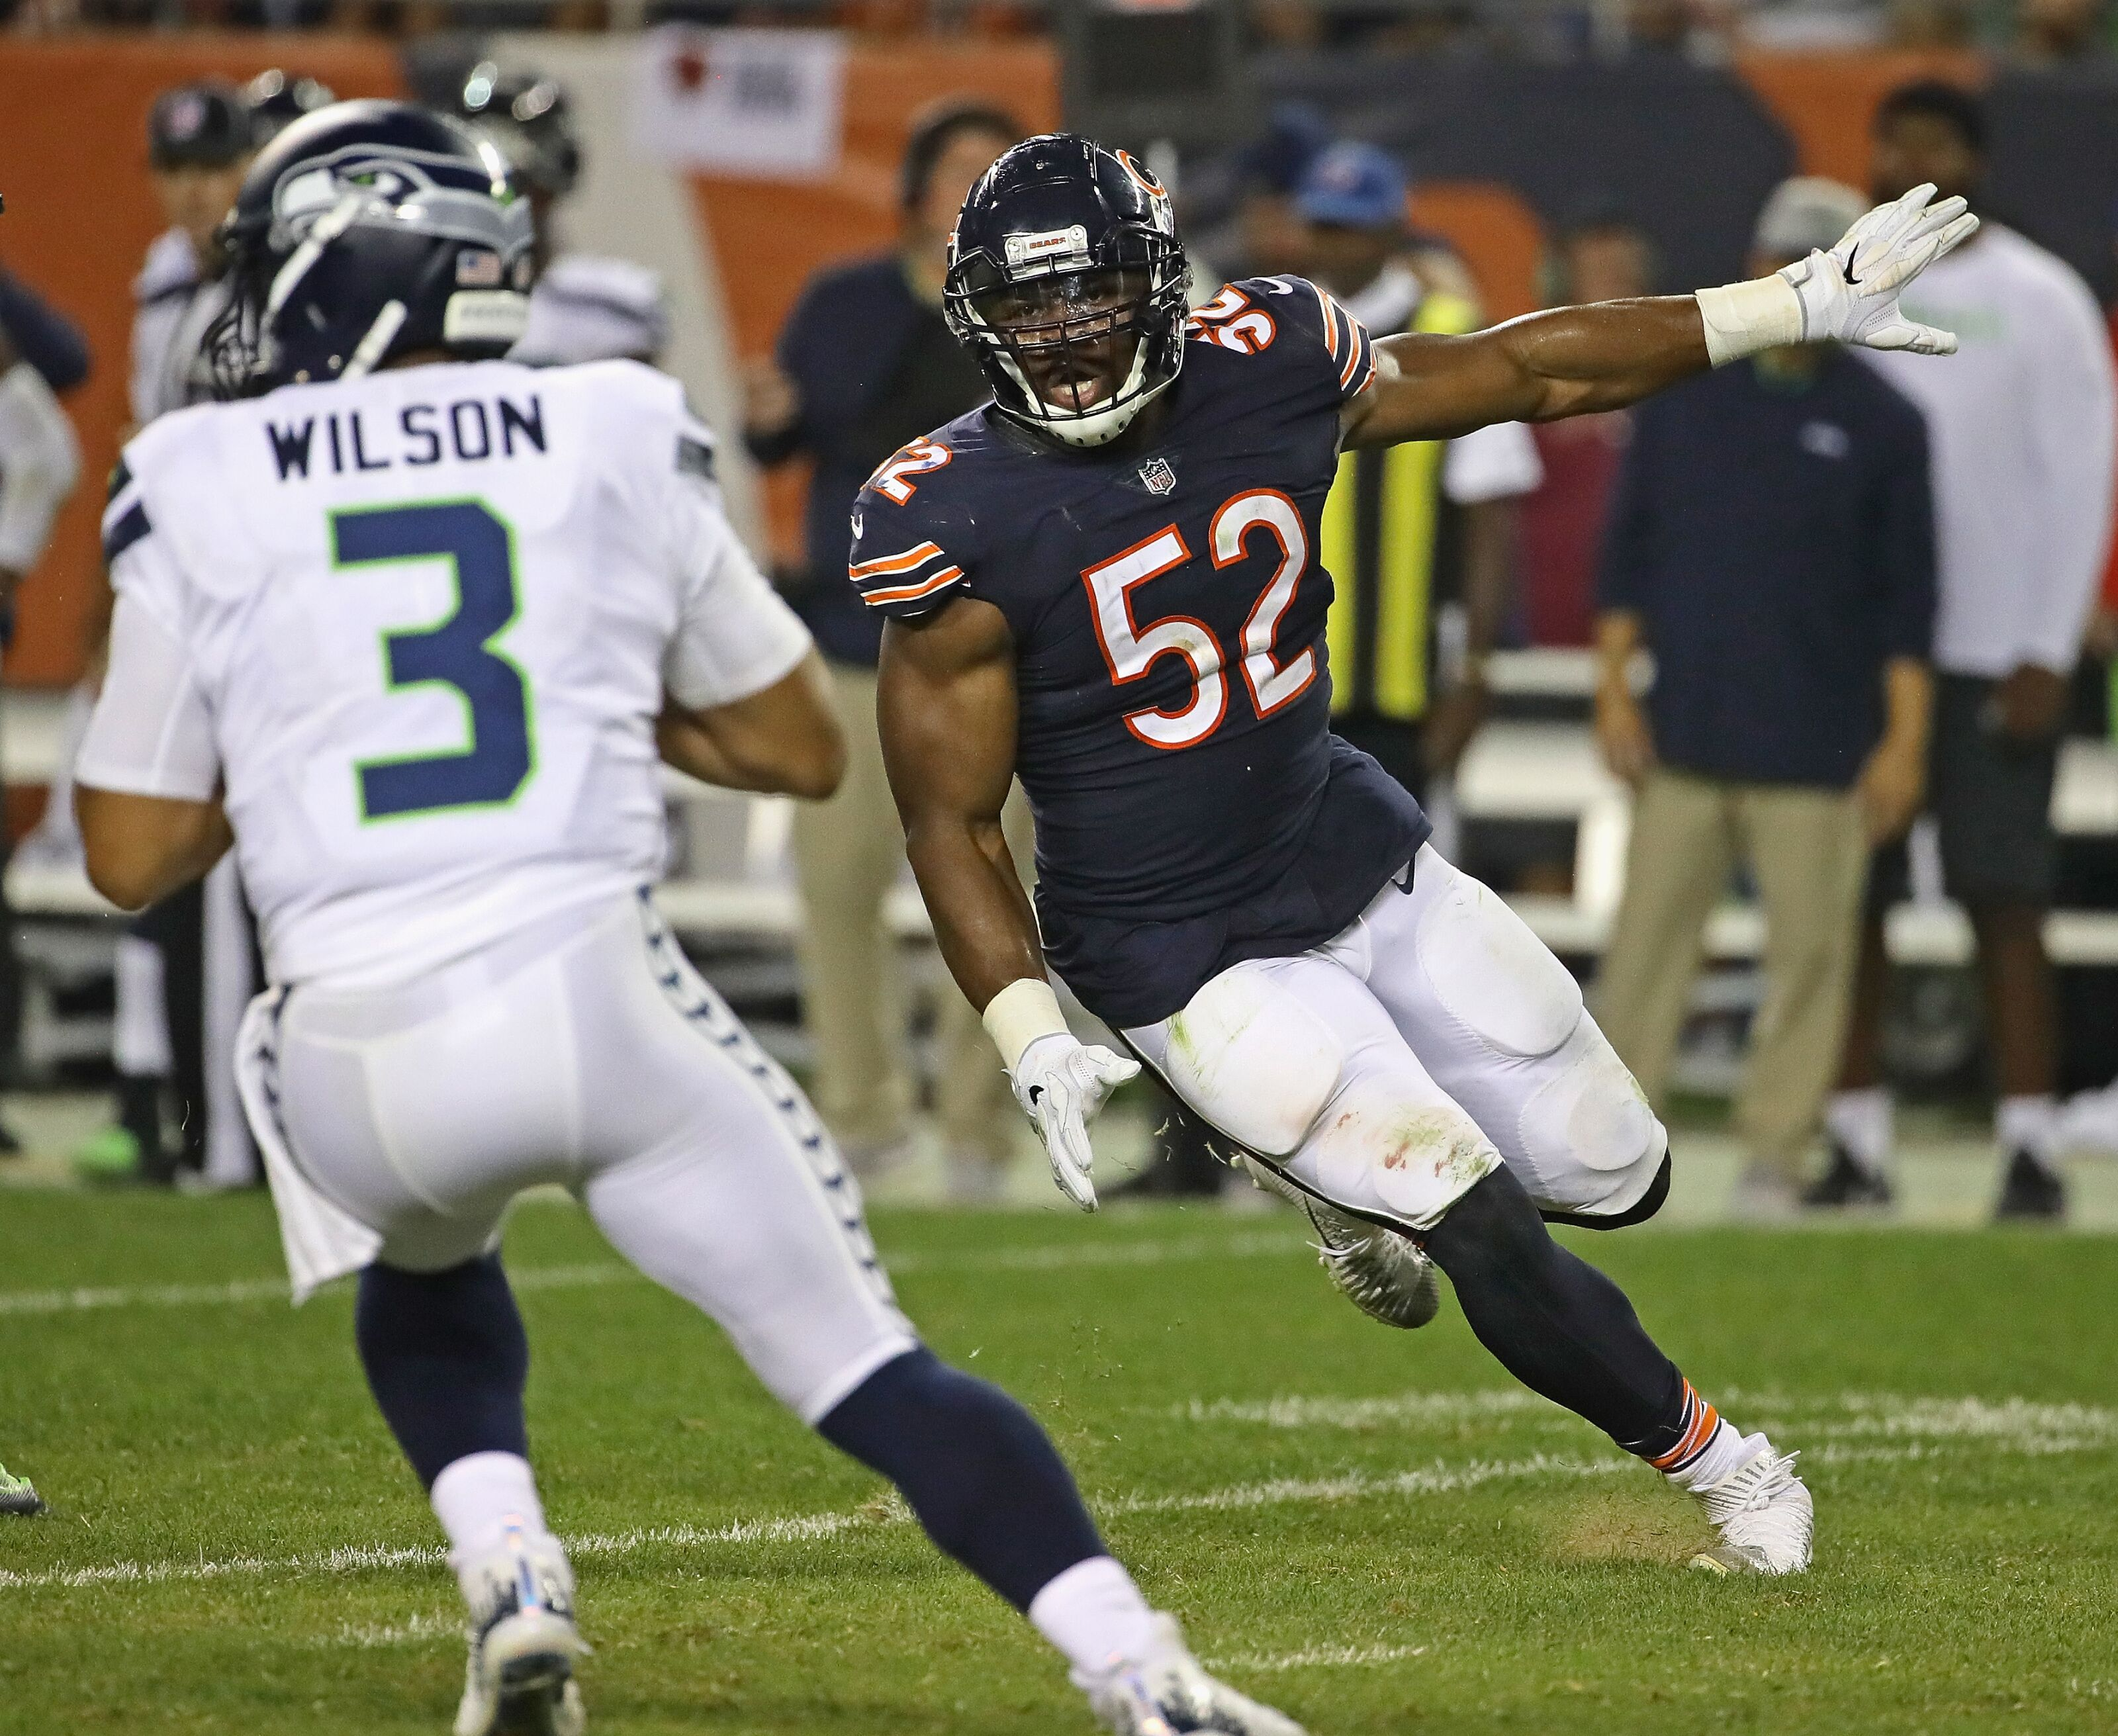 Just how good is the Chicago Bears defense?